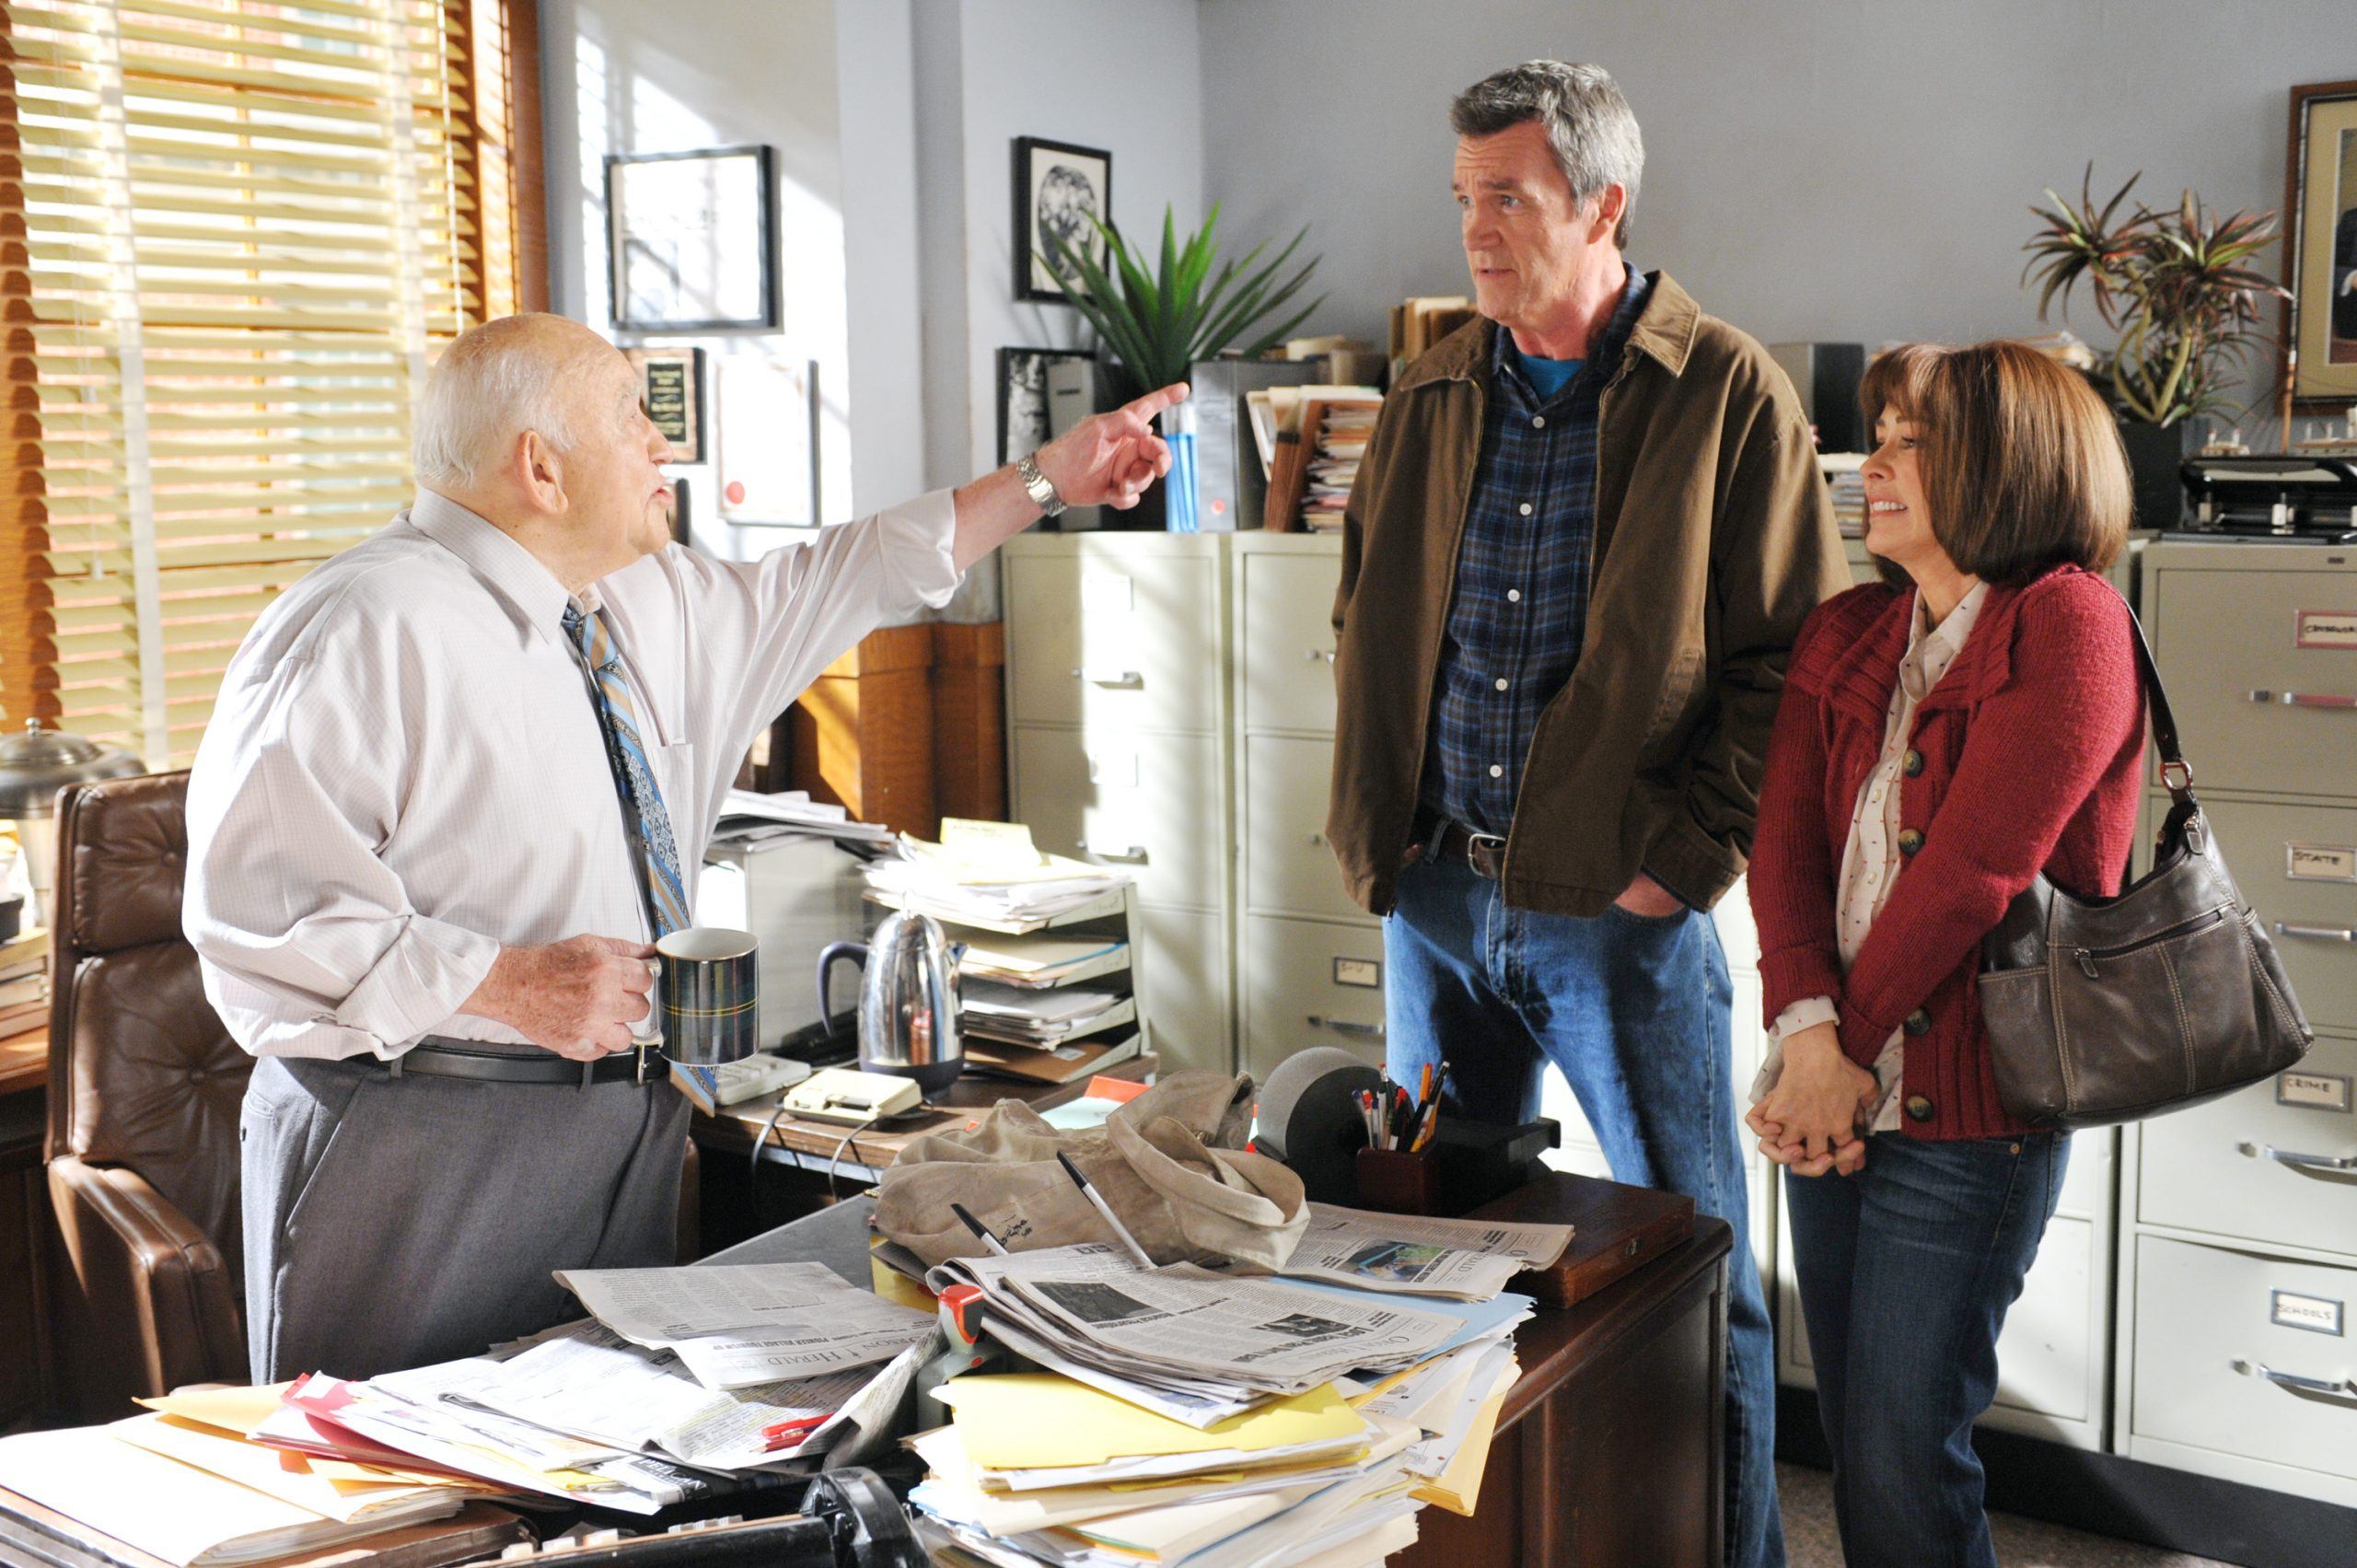 (left to right): Late actor Ed Asner in a scene from ABC's 'The Middle' with actors Neil Flynn and Patricia Heaton